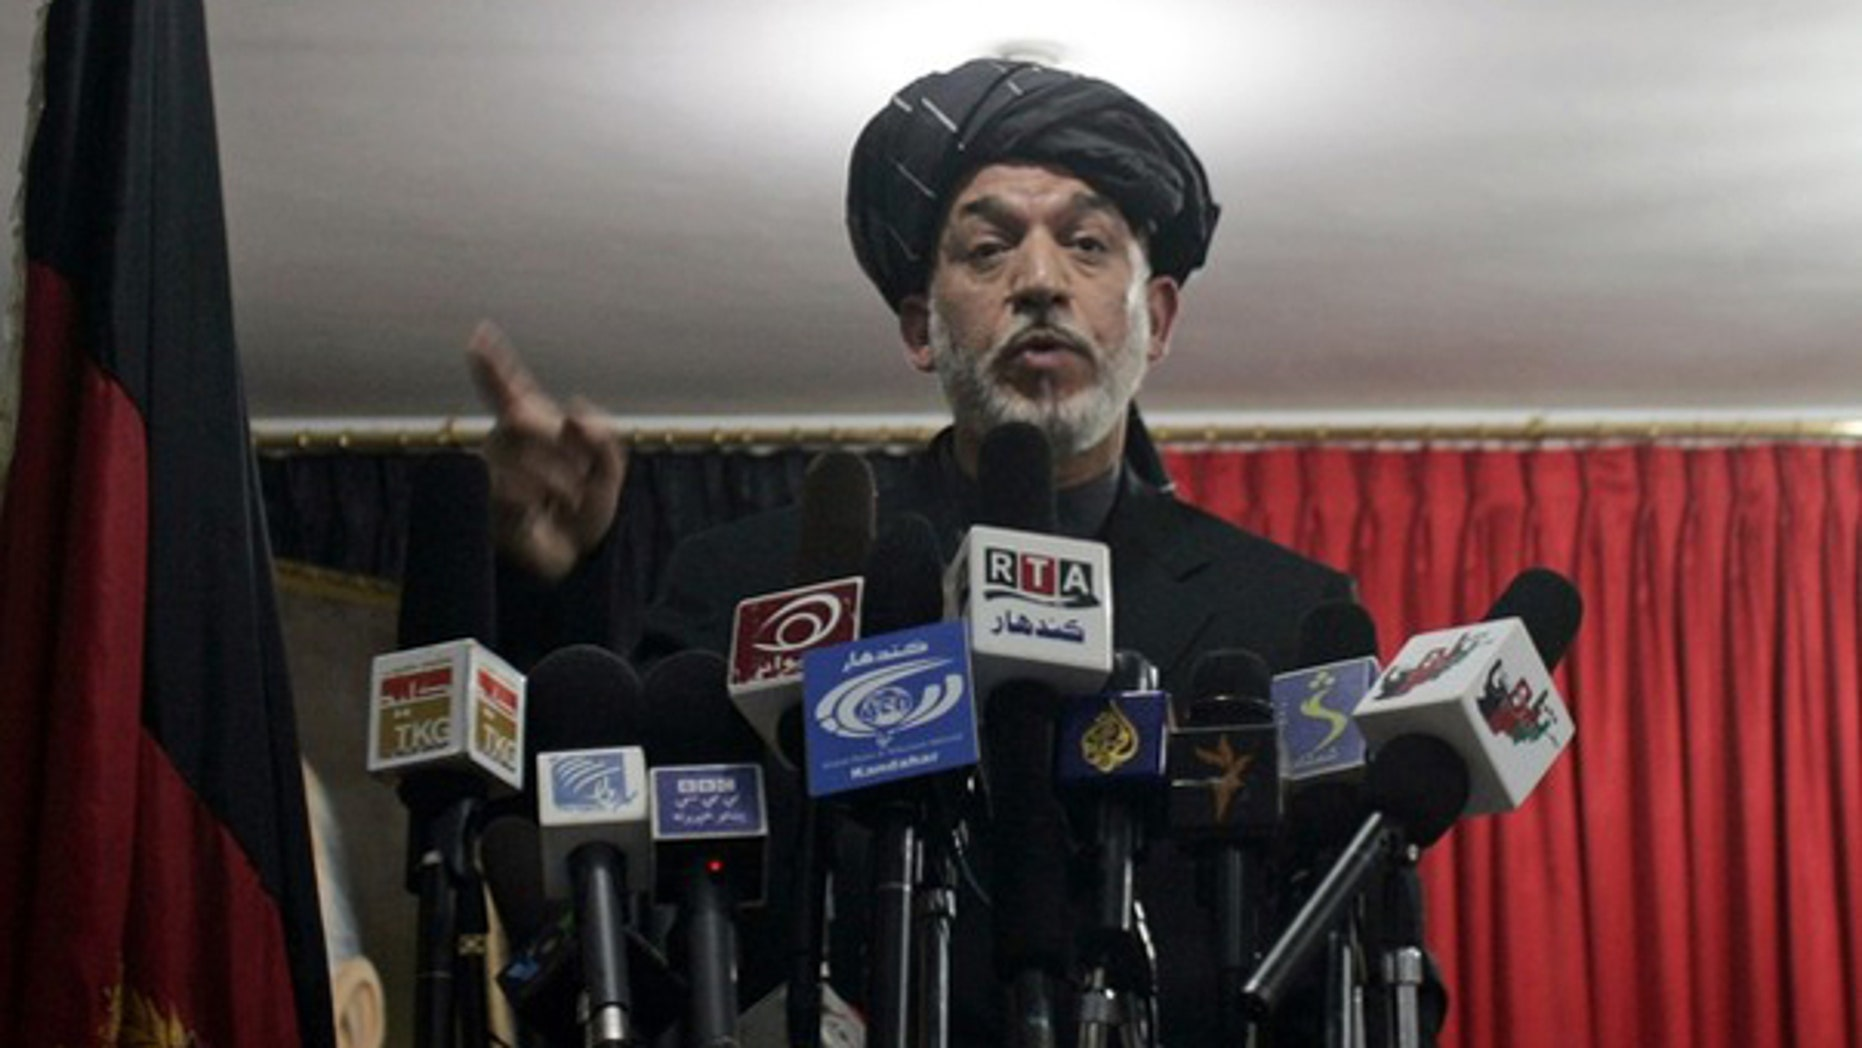 Afghan President Hamid Karzai speaks at a meeting in Kandahar April 4. (Reuters Photo)